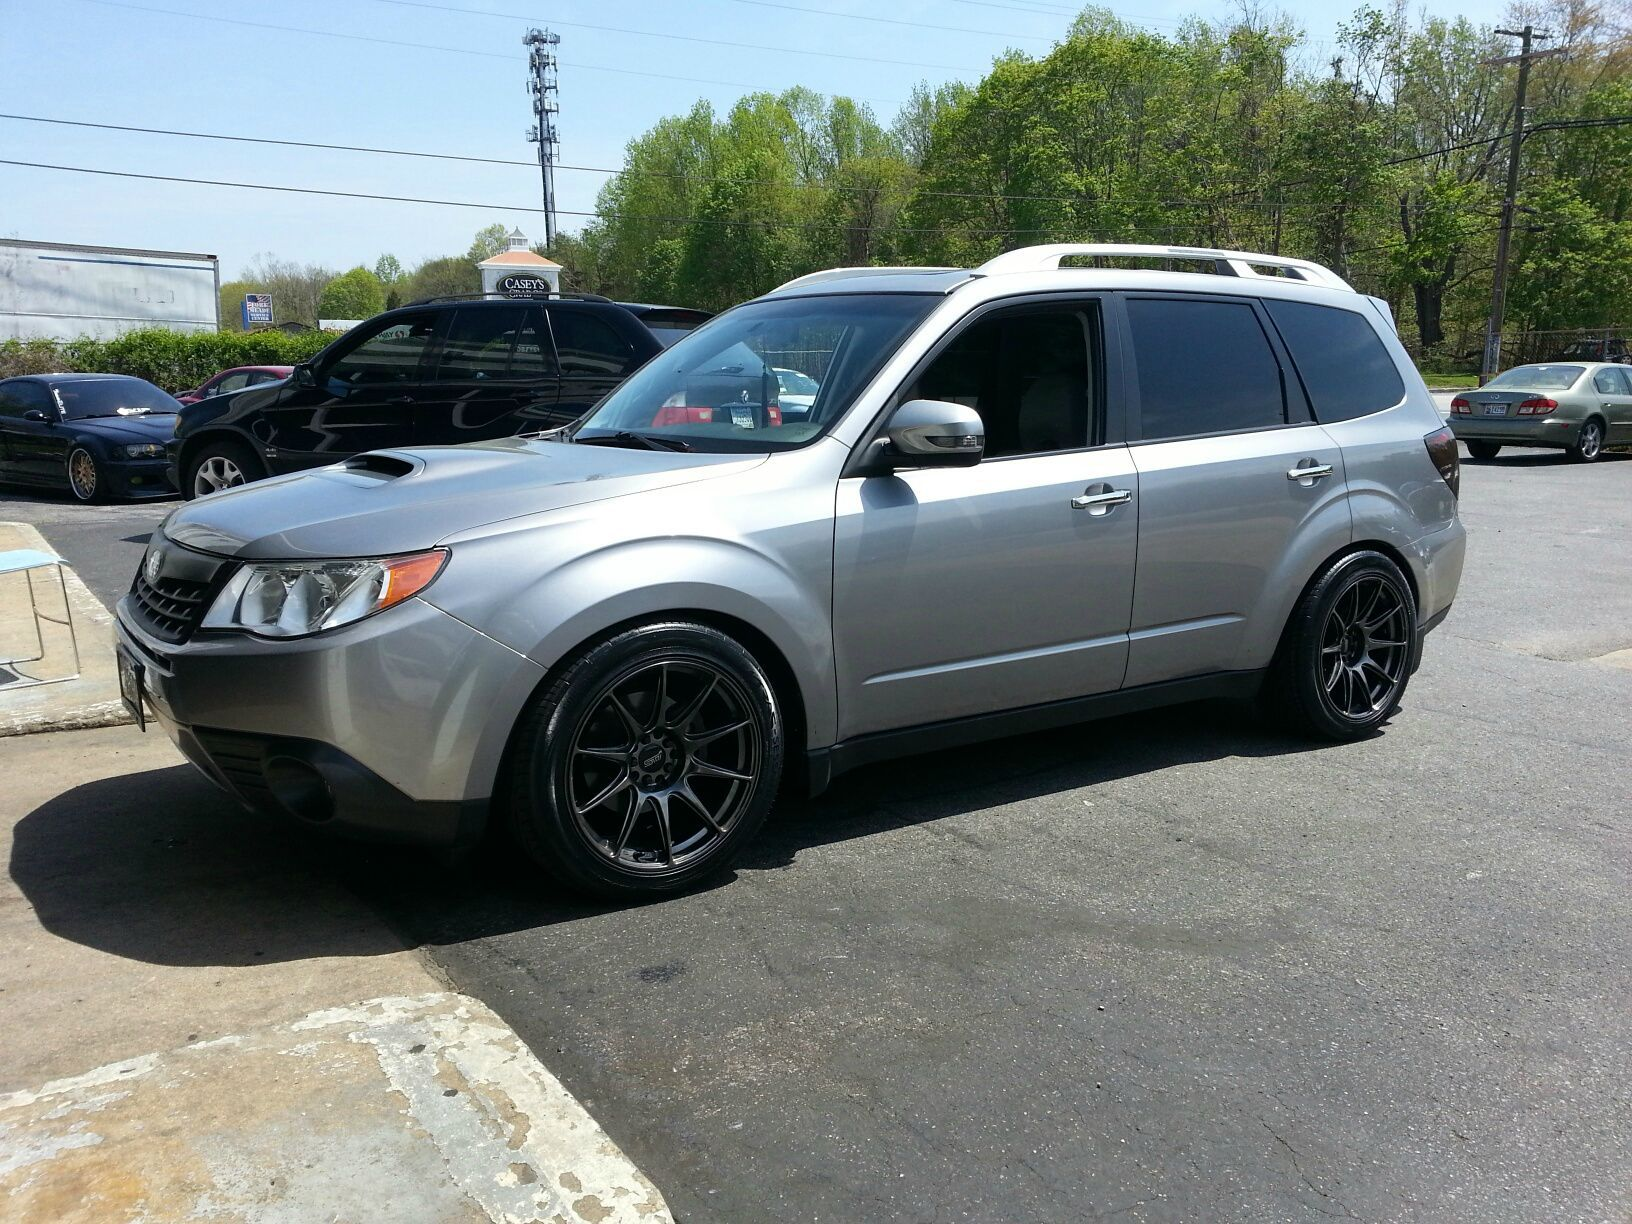 Forester sh xt subaru pinterest subaru subaru forester and cars suspension bc br forester coilovers wheel manufacturer xxr wheel model 527 diameter 18 width offset tire size stretched issues slight rubbing in vanachro Gallery